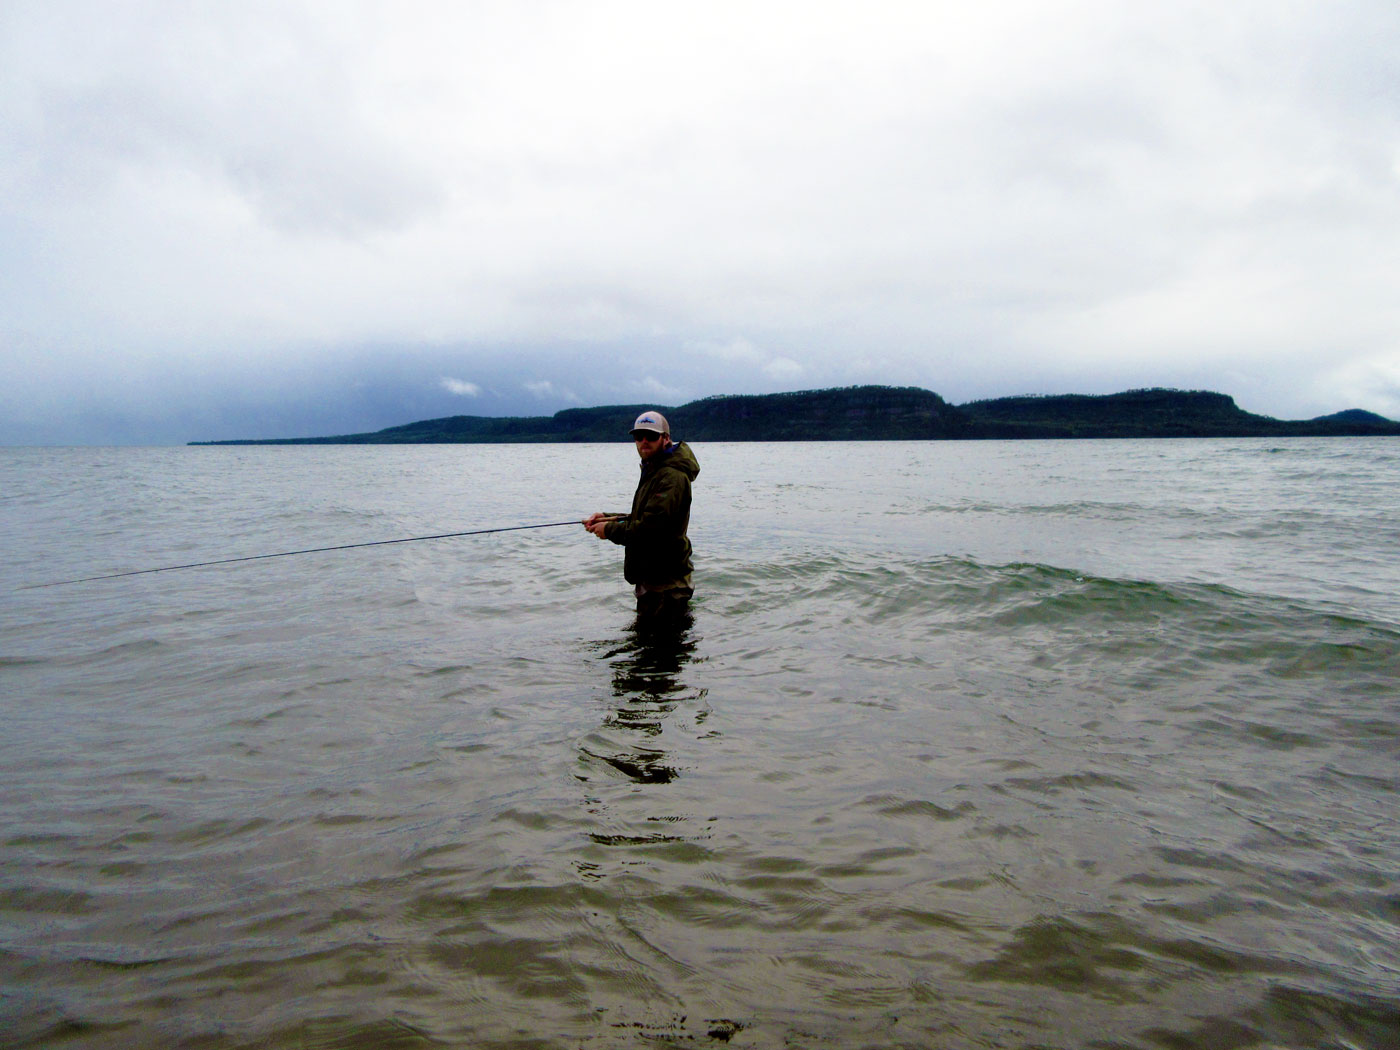 Leif-Fly-Fishing-the-Bay_edit